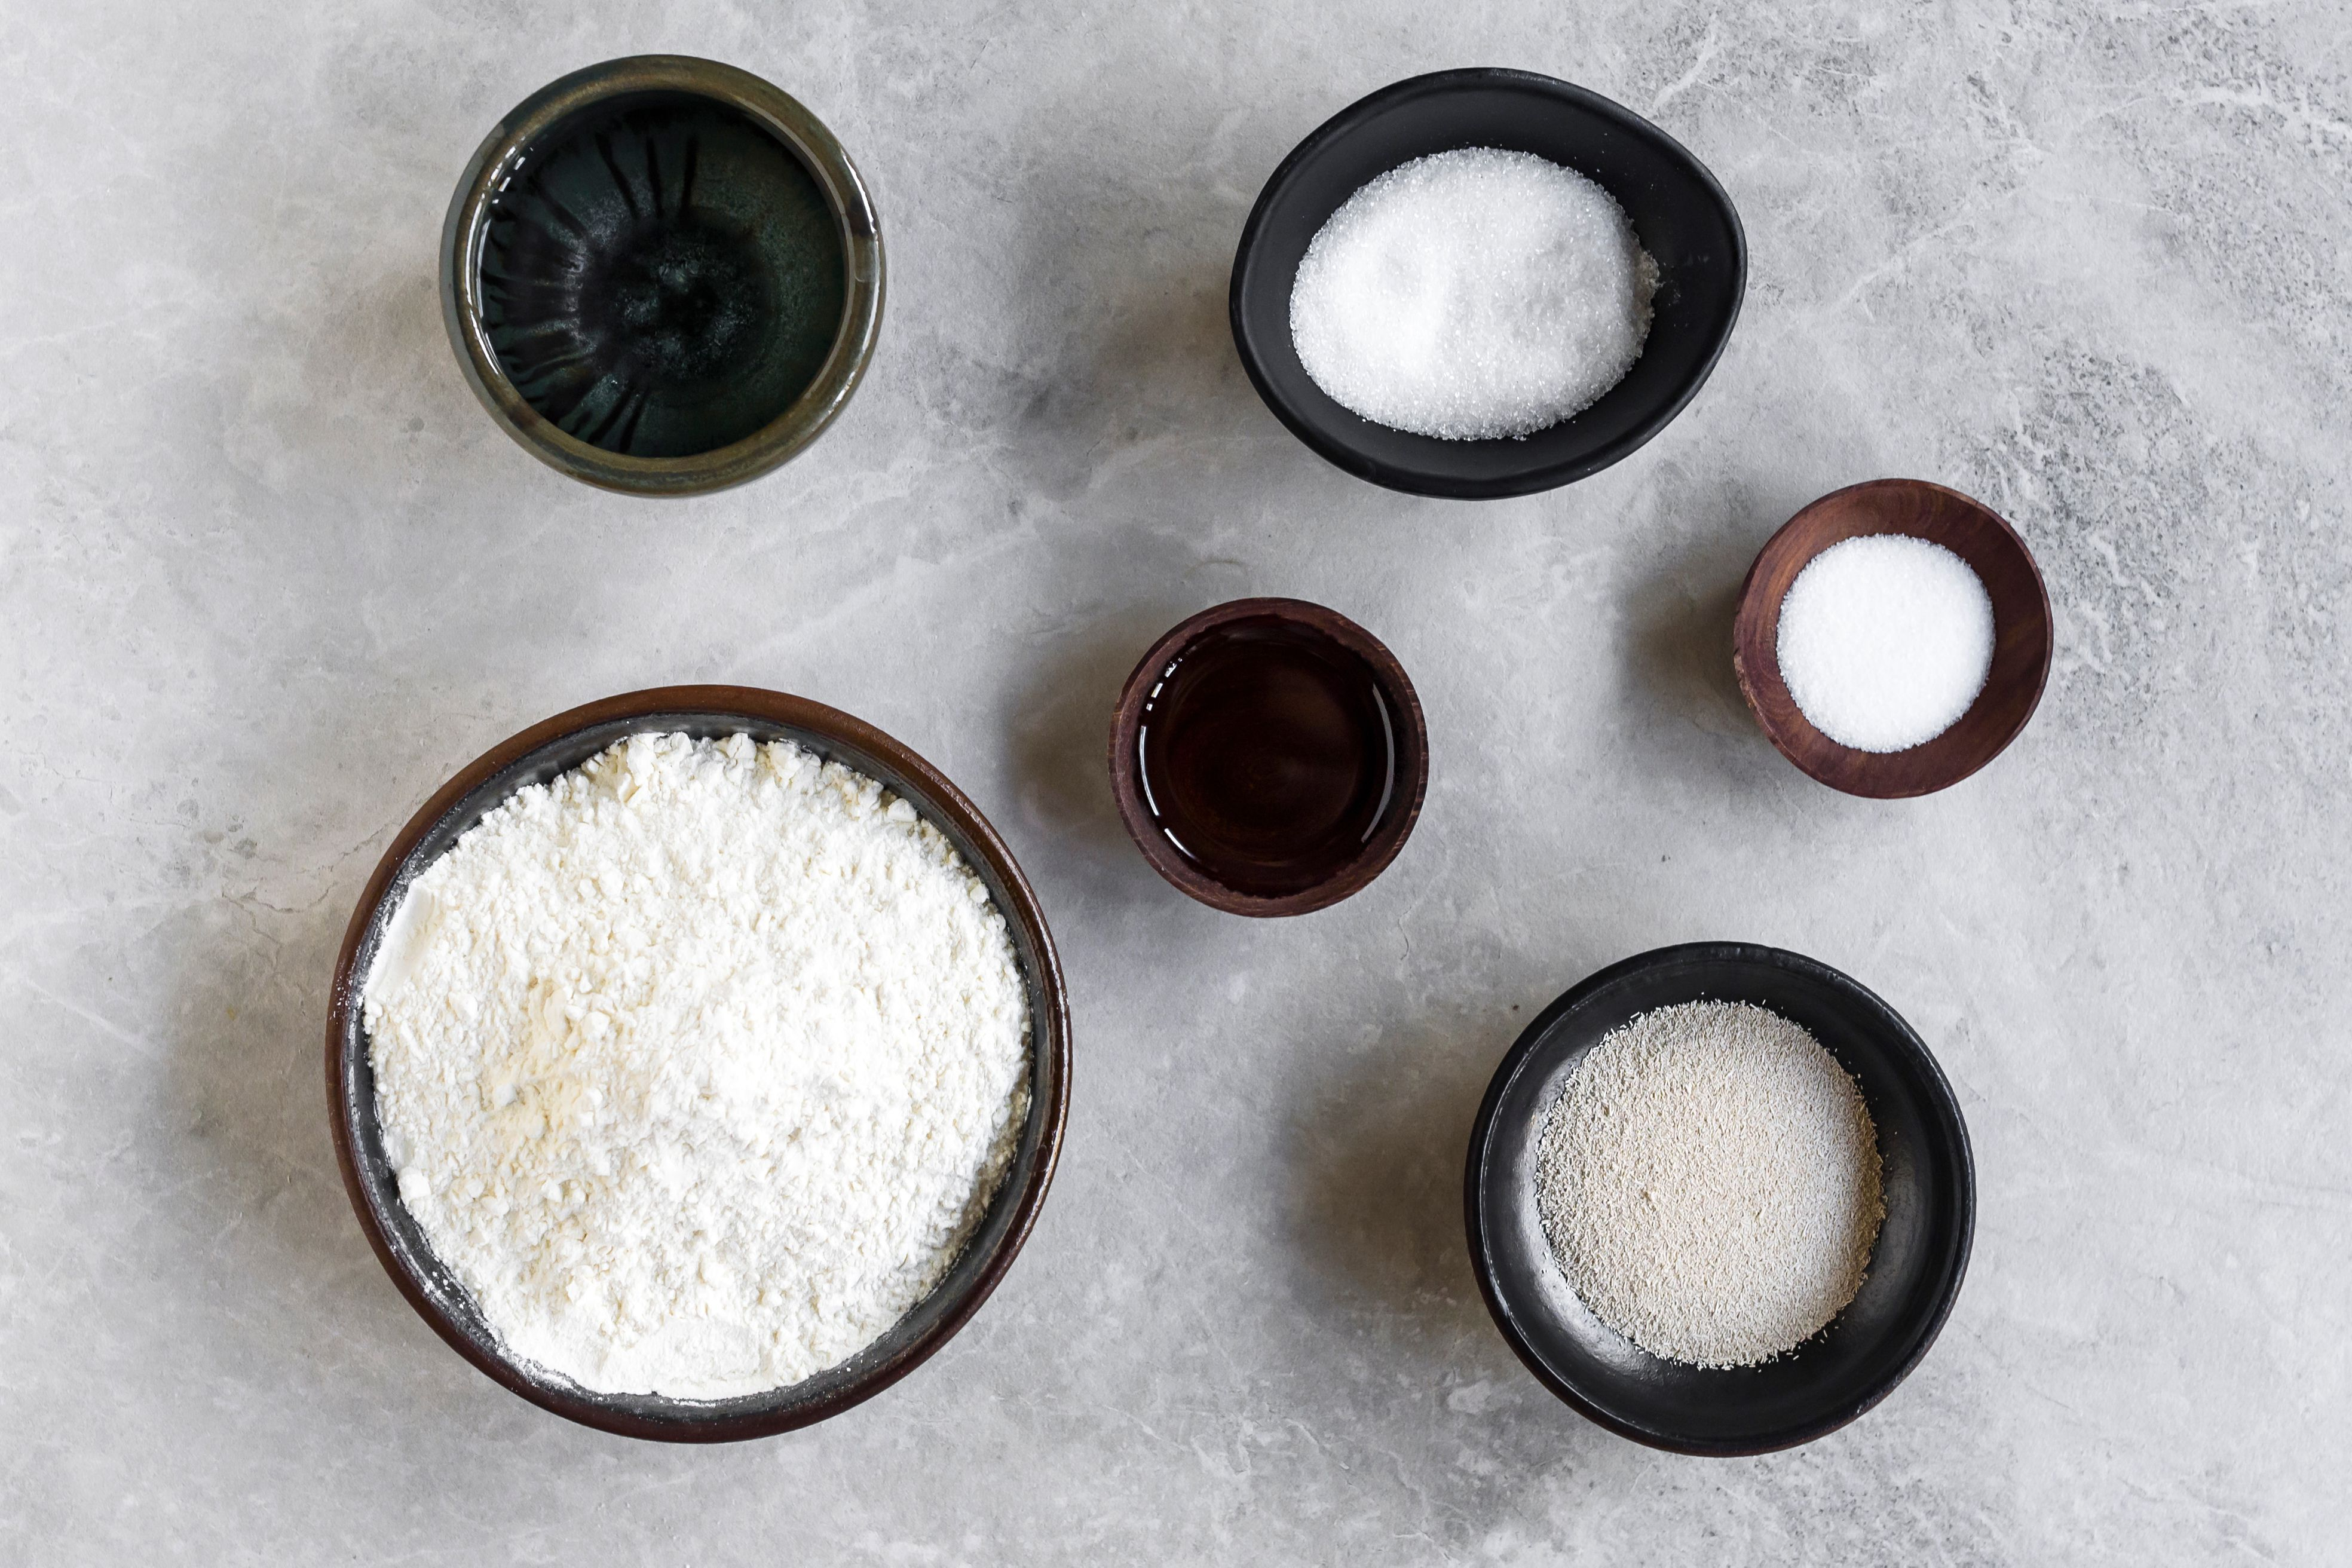 New York-style pizza dough ingredients